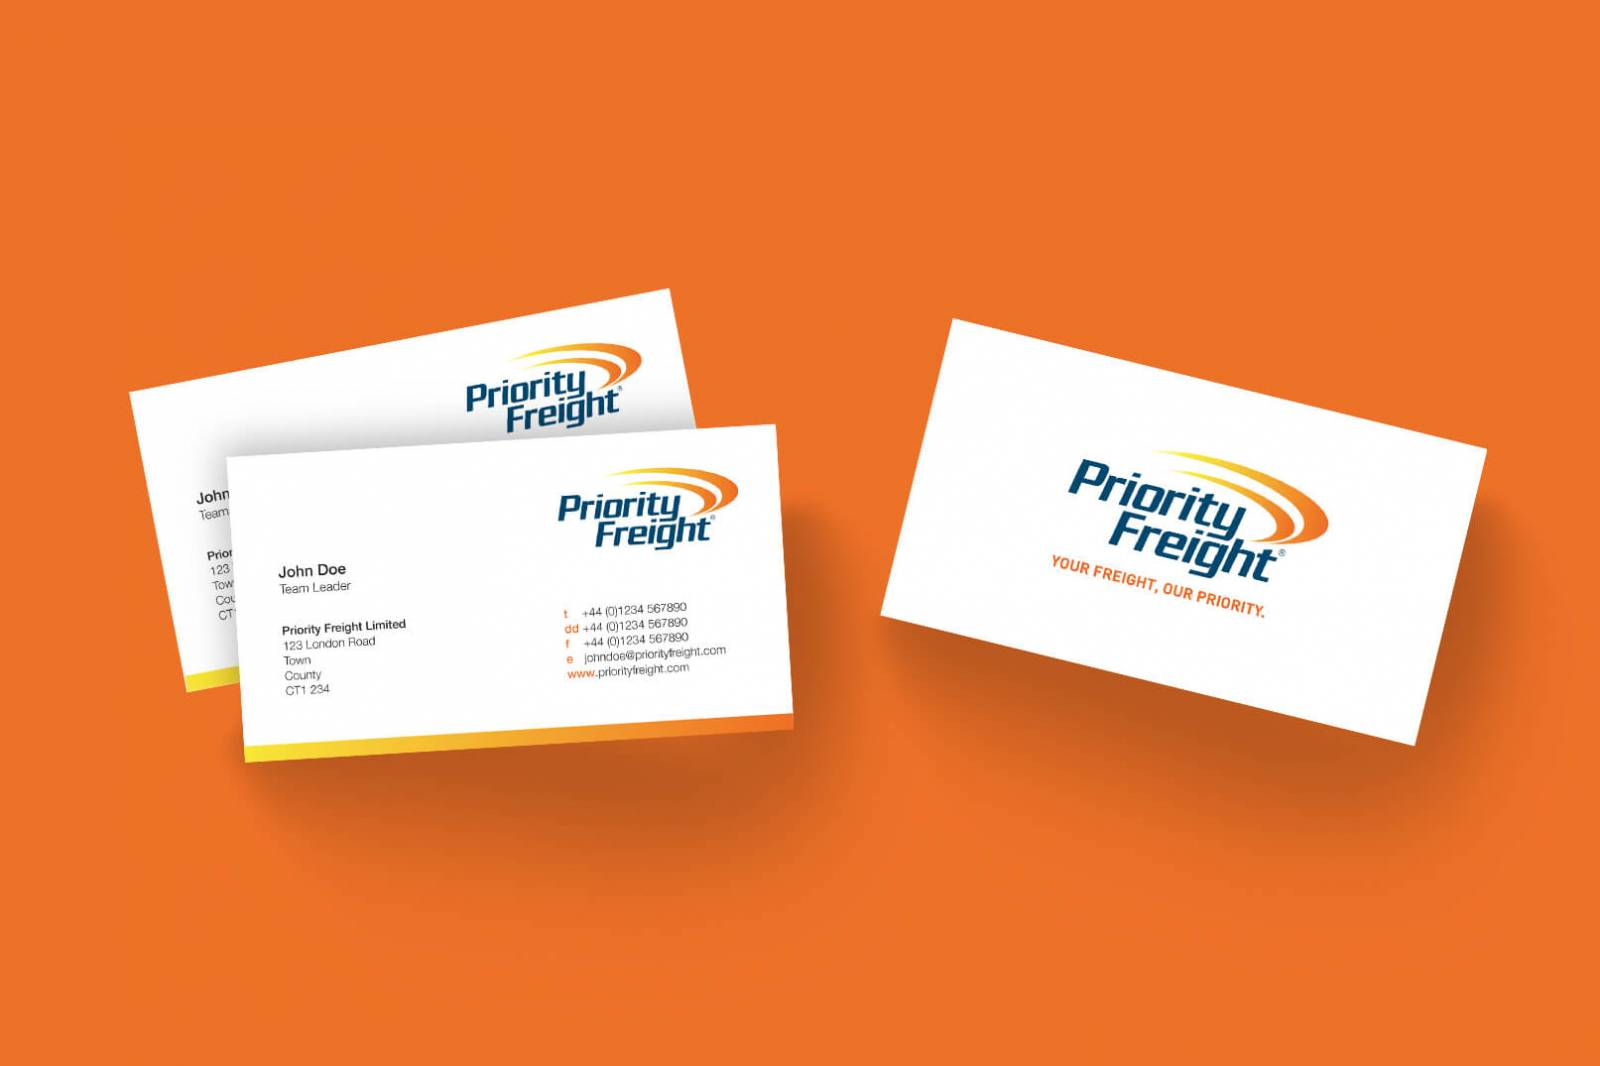 Priority-Freight-business-cards-design-agency-graphic-design-canterbury.jpg